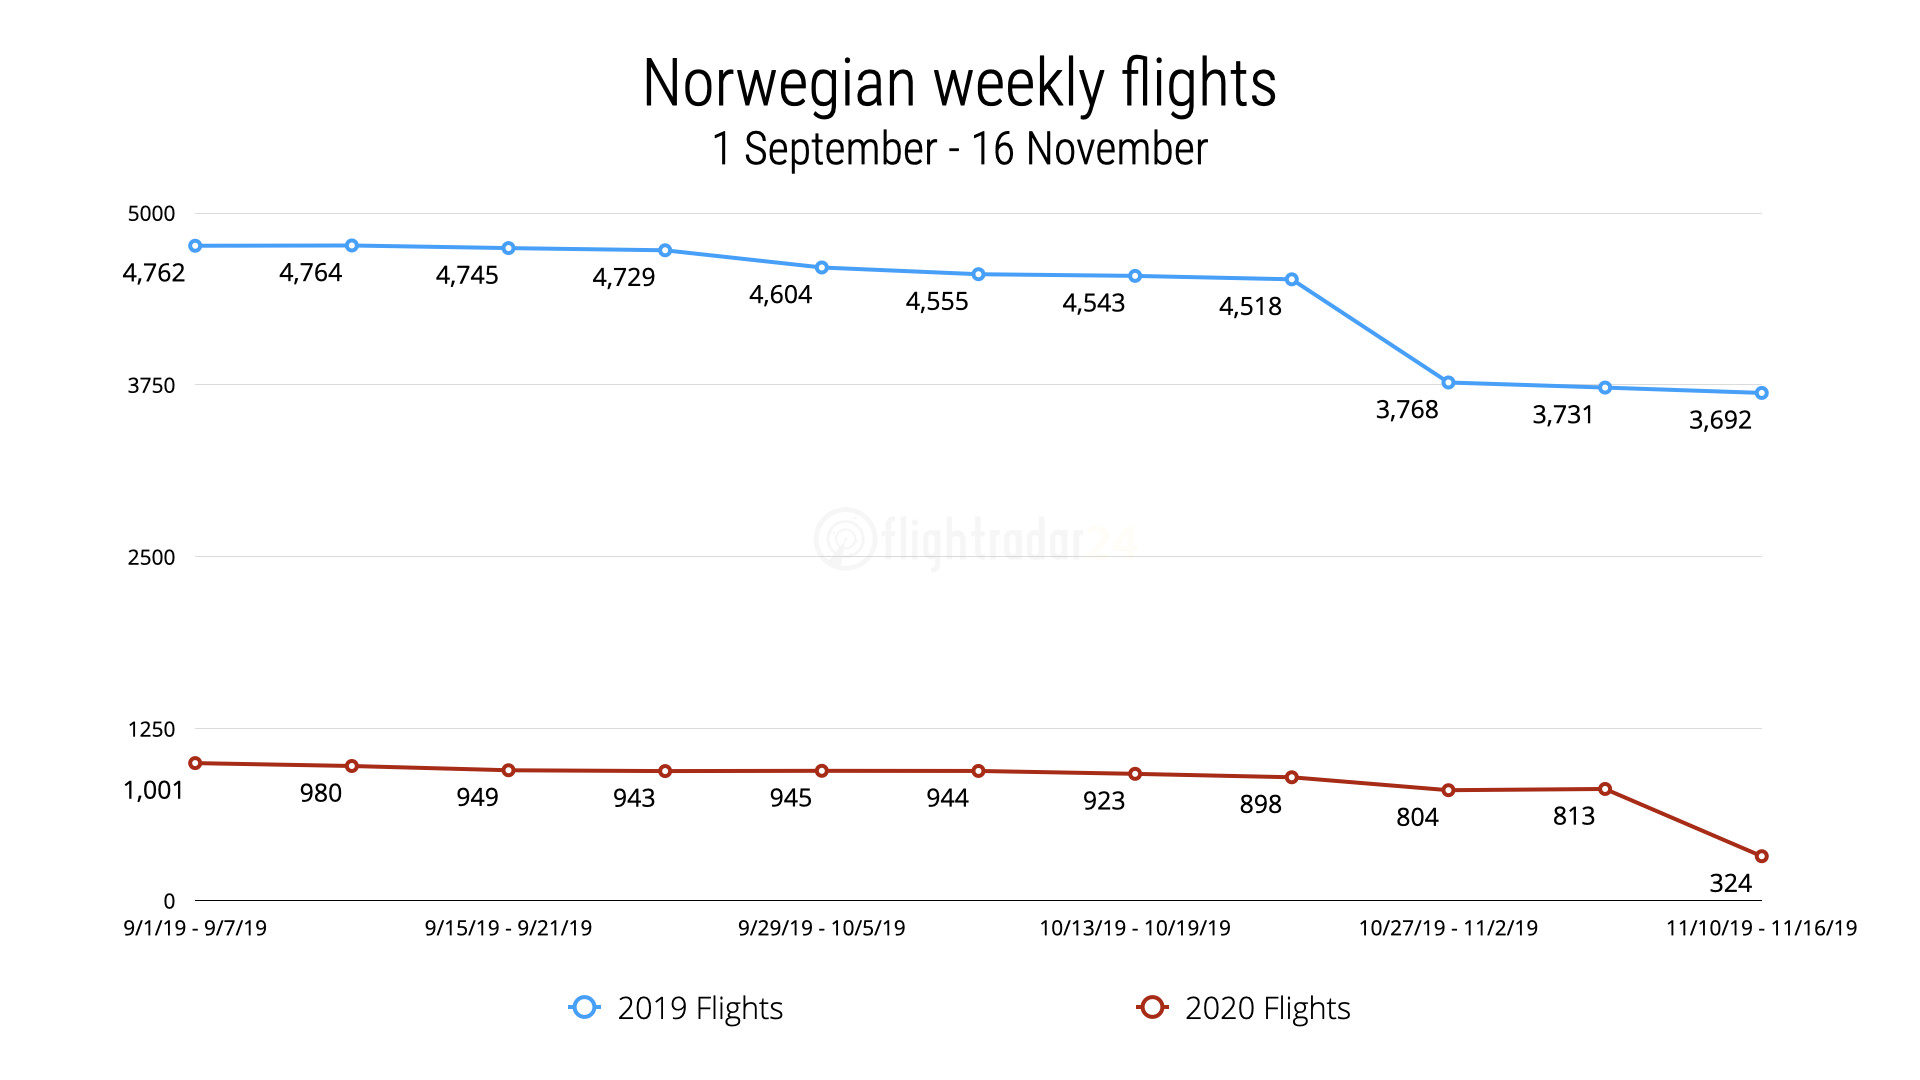 2019 and 2020 Weekly flights by Norwegian